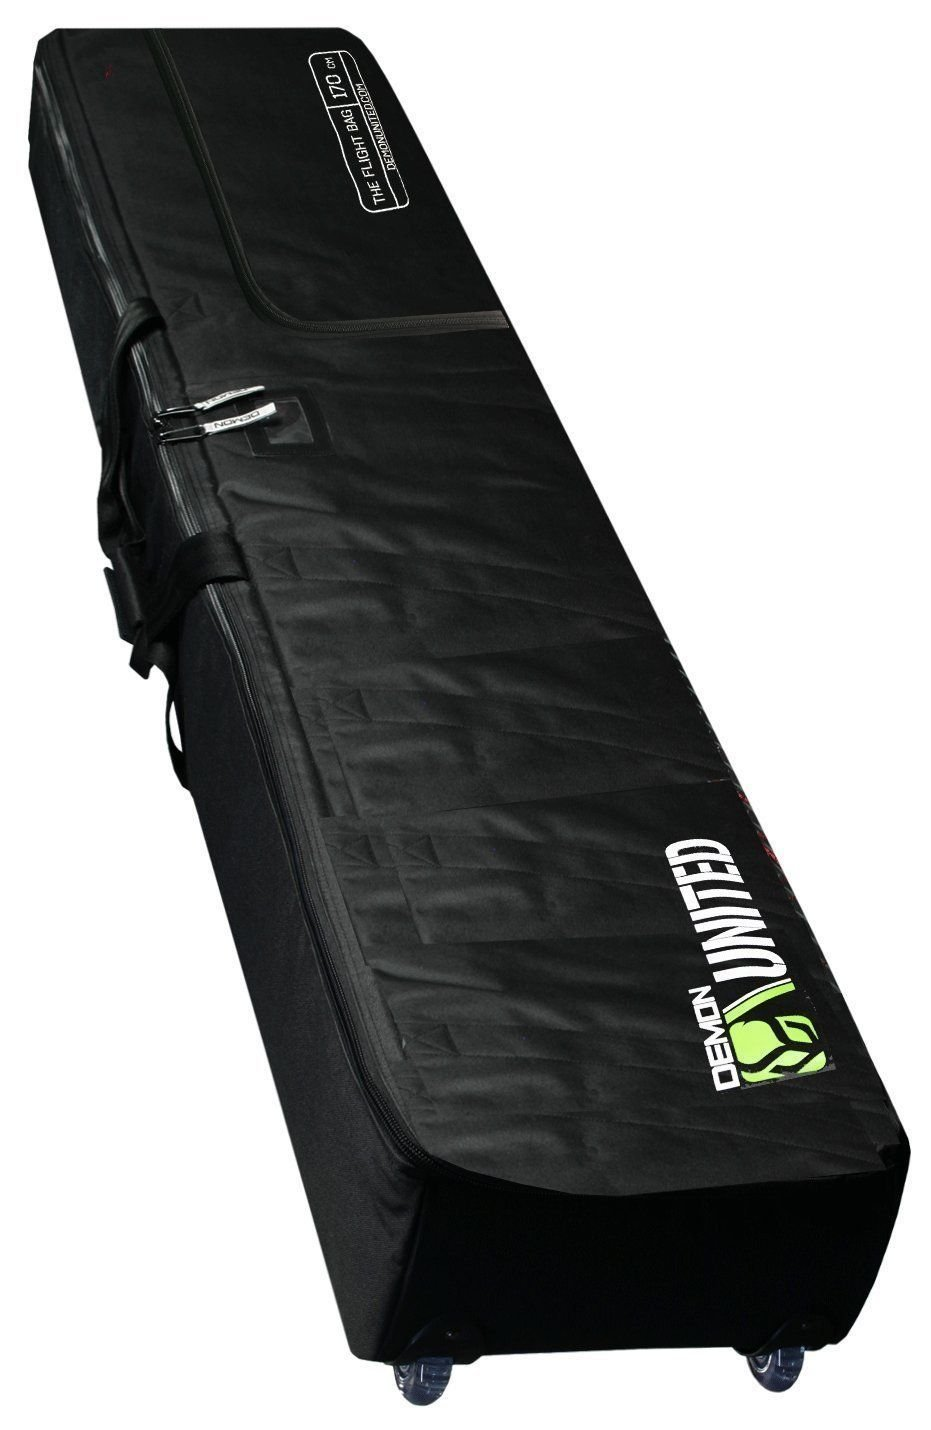 Demon Phantom Fully Padded Travel Snowboard Bag with Wheels by Demon United